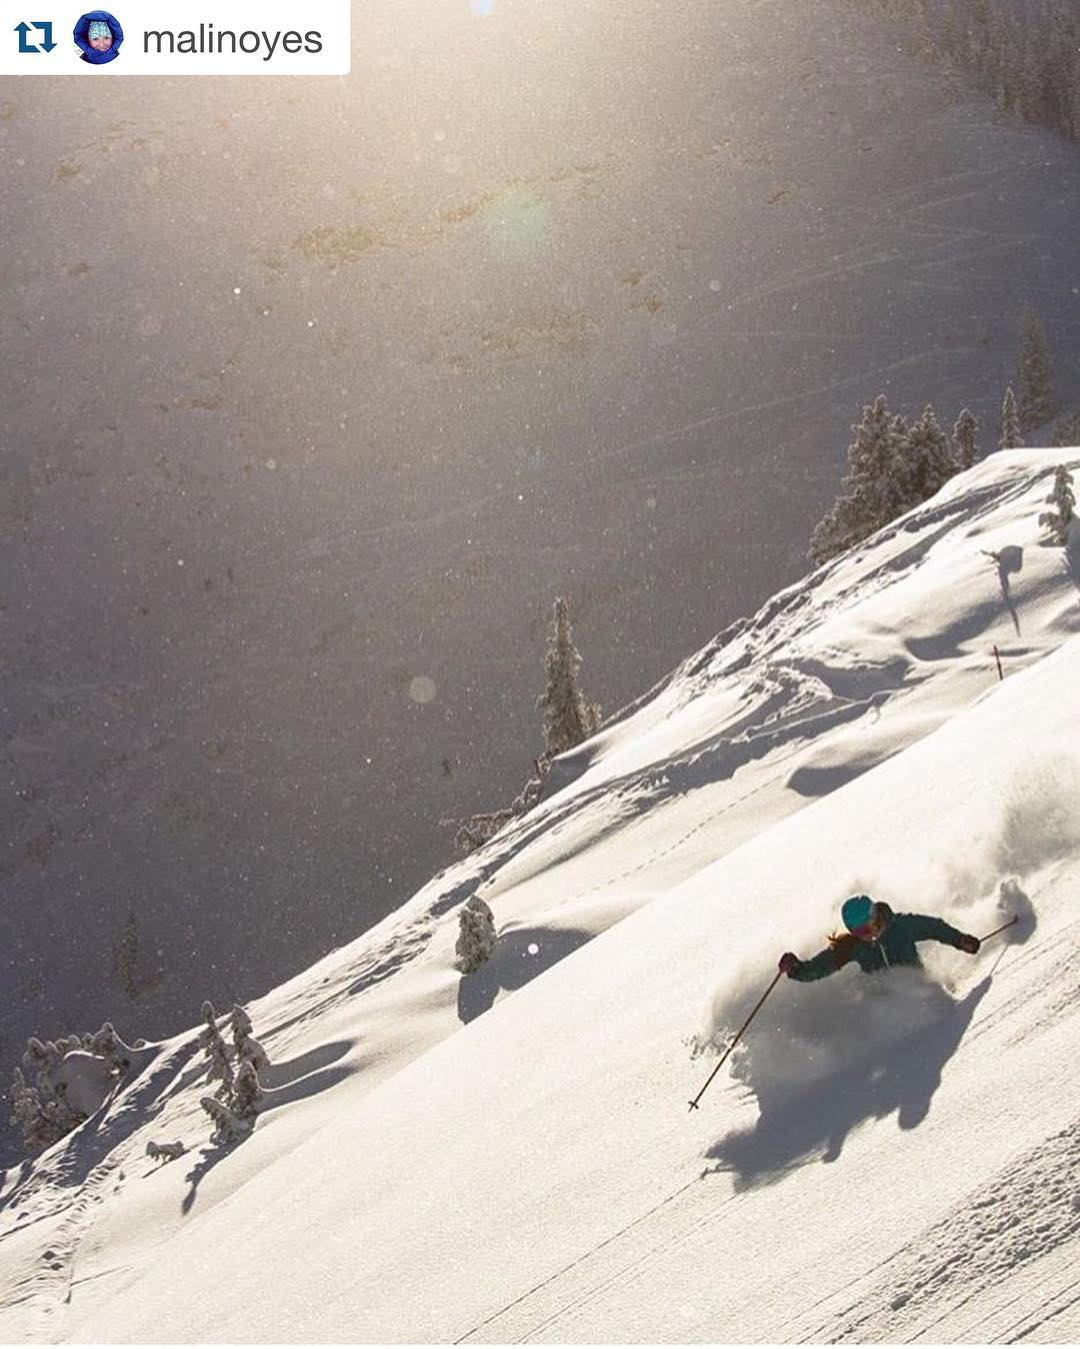 some alta magic for your monday // SP athlete @malinoyes //